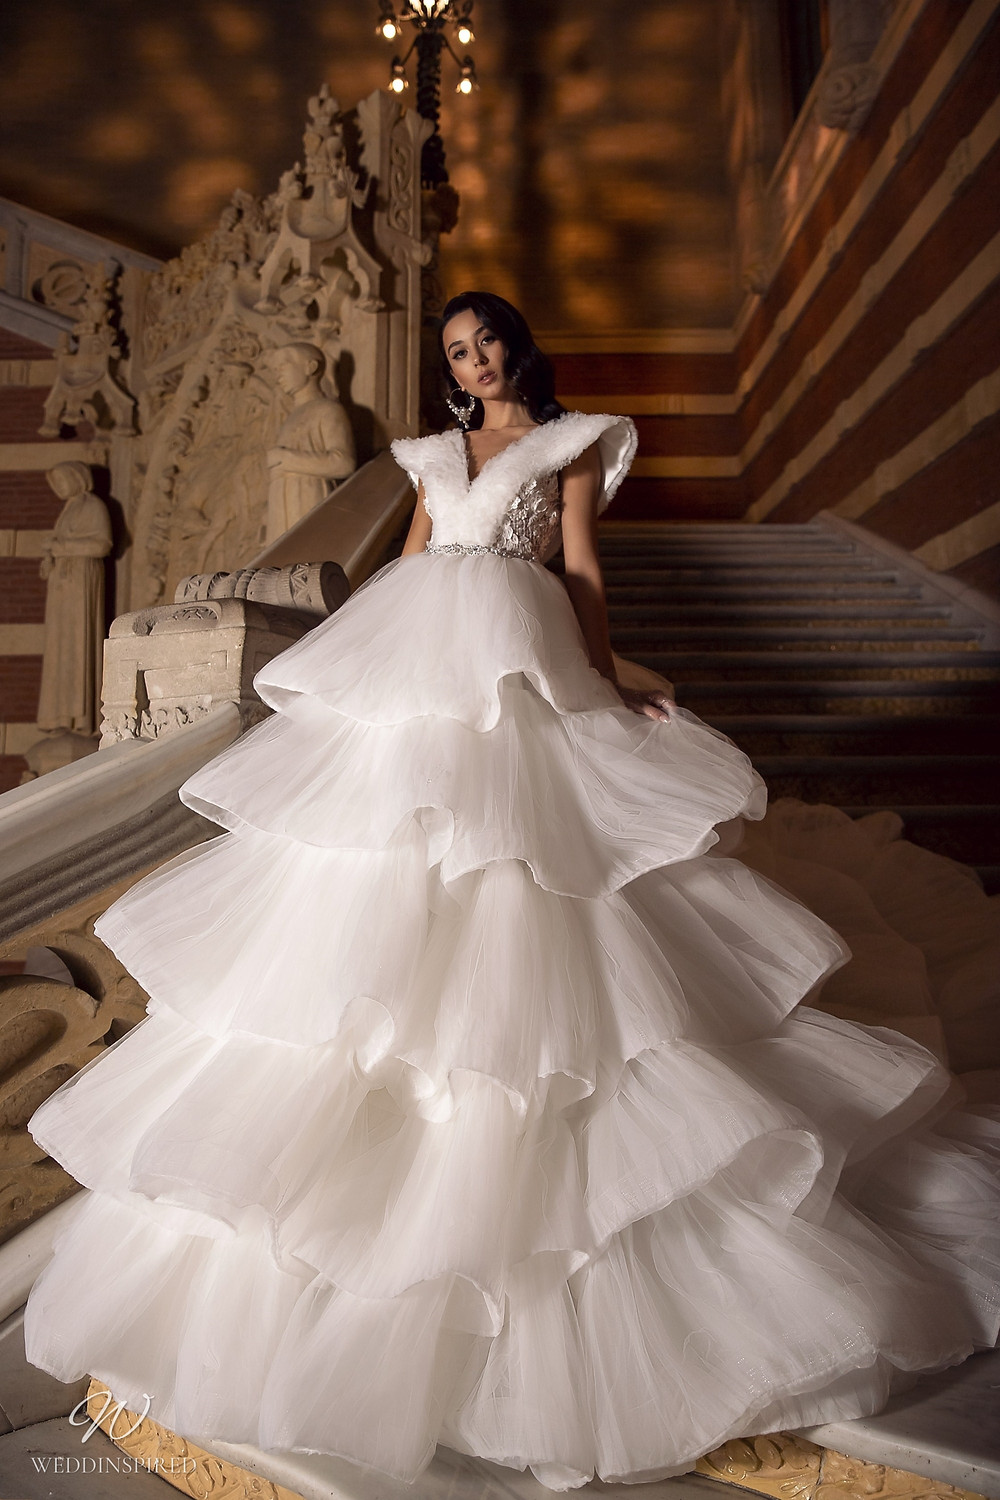 A Maks Mariano ball gown wedding dress with layered ruffle skirt